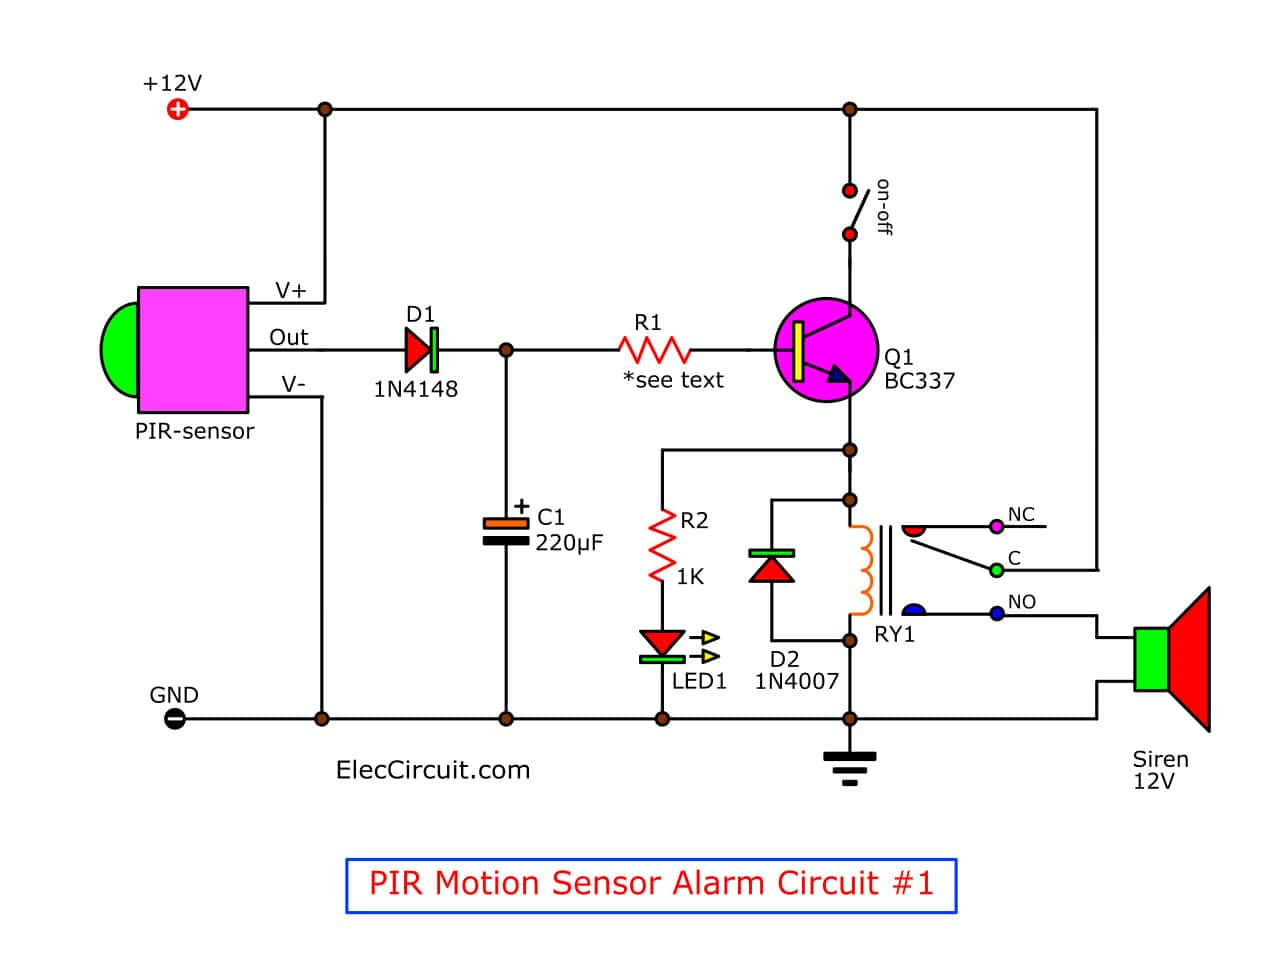 pir motion sensor alarm circuit heath zenith motion light wiring diagram #3